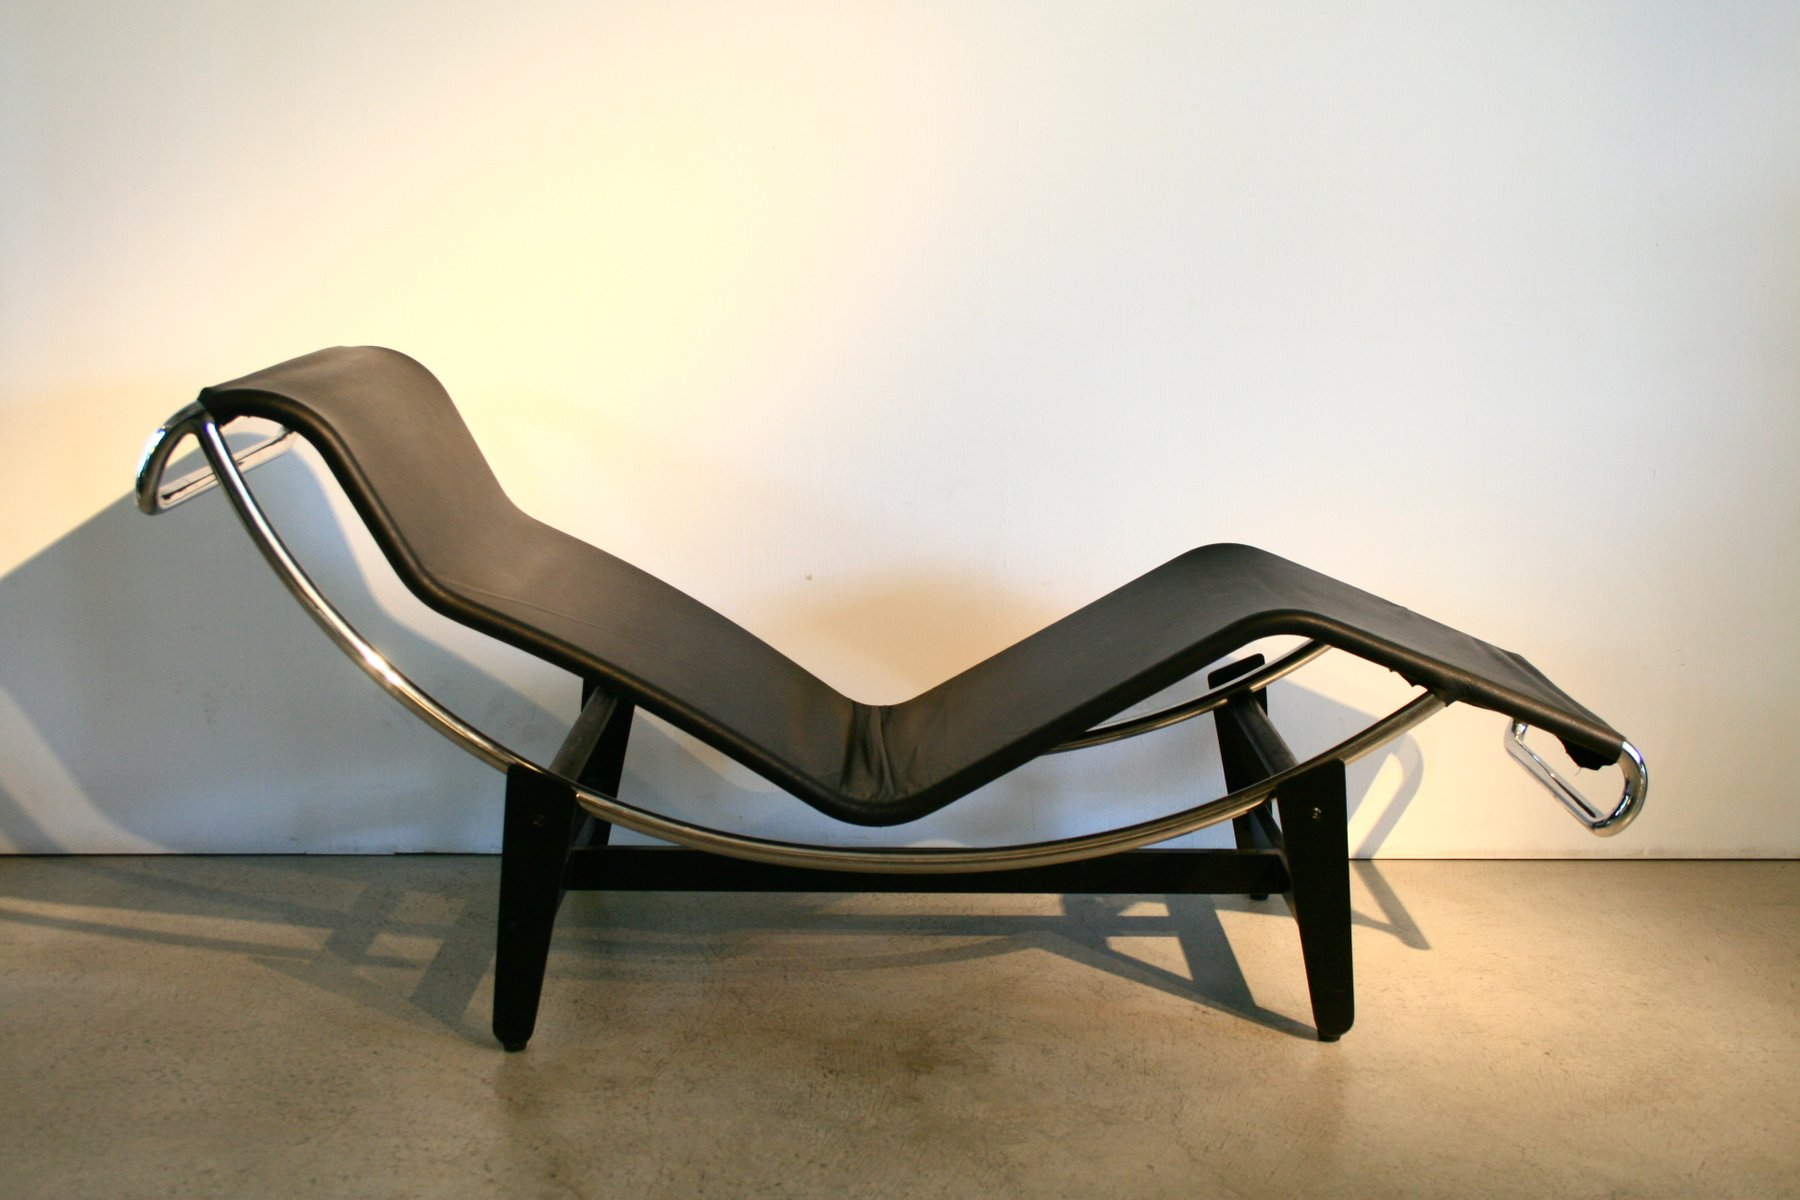 Vintage LC4 Lounge Chair By Le Corbusier For Wohnbedarf, 1950s